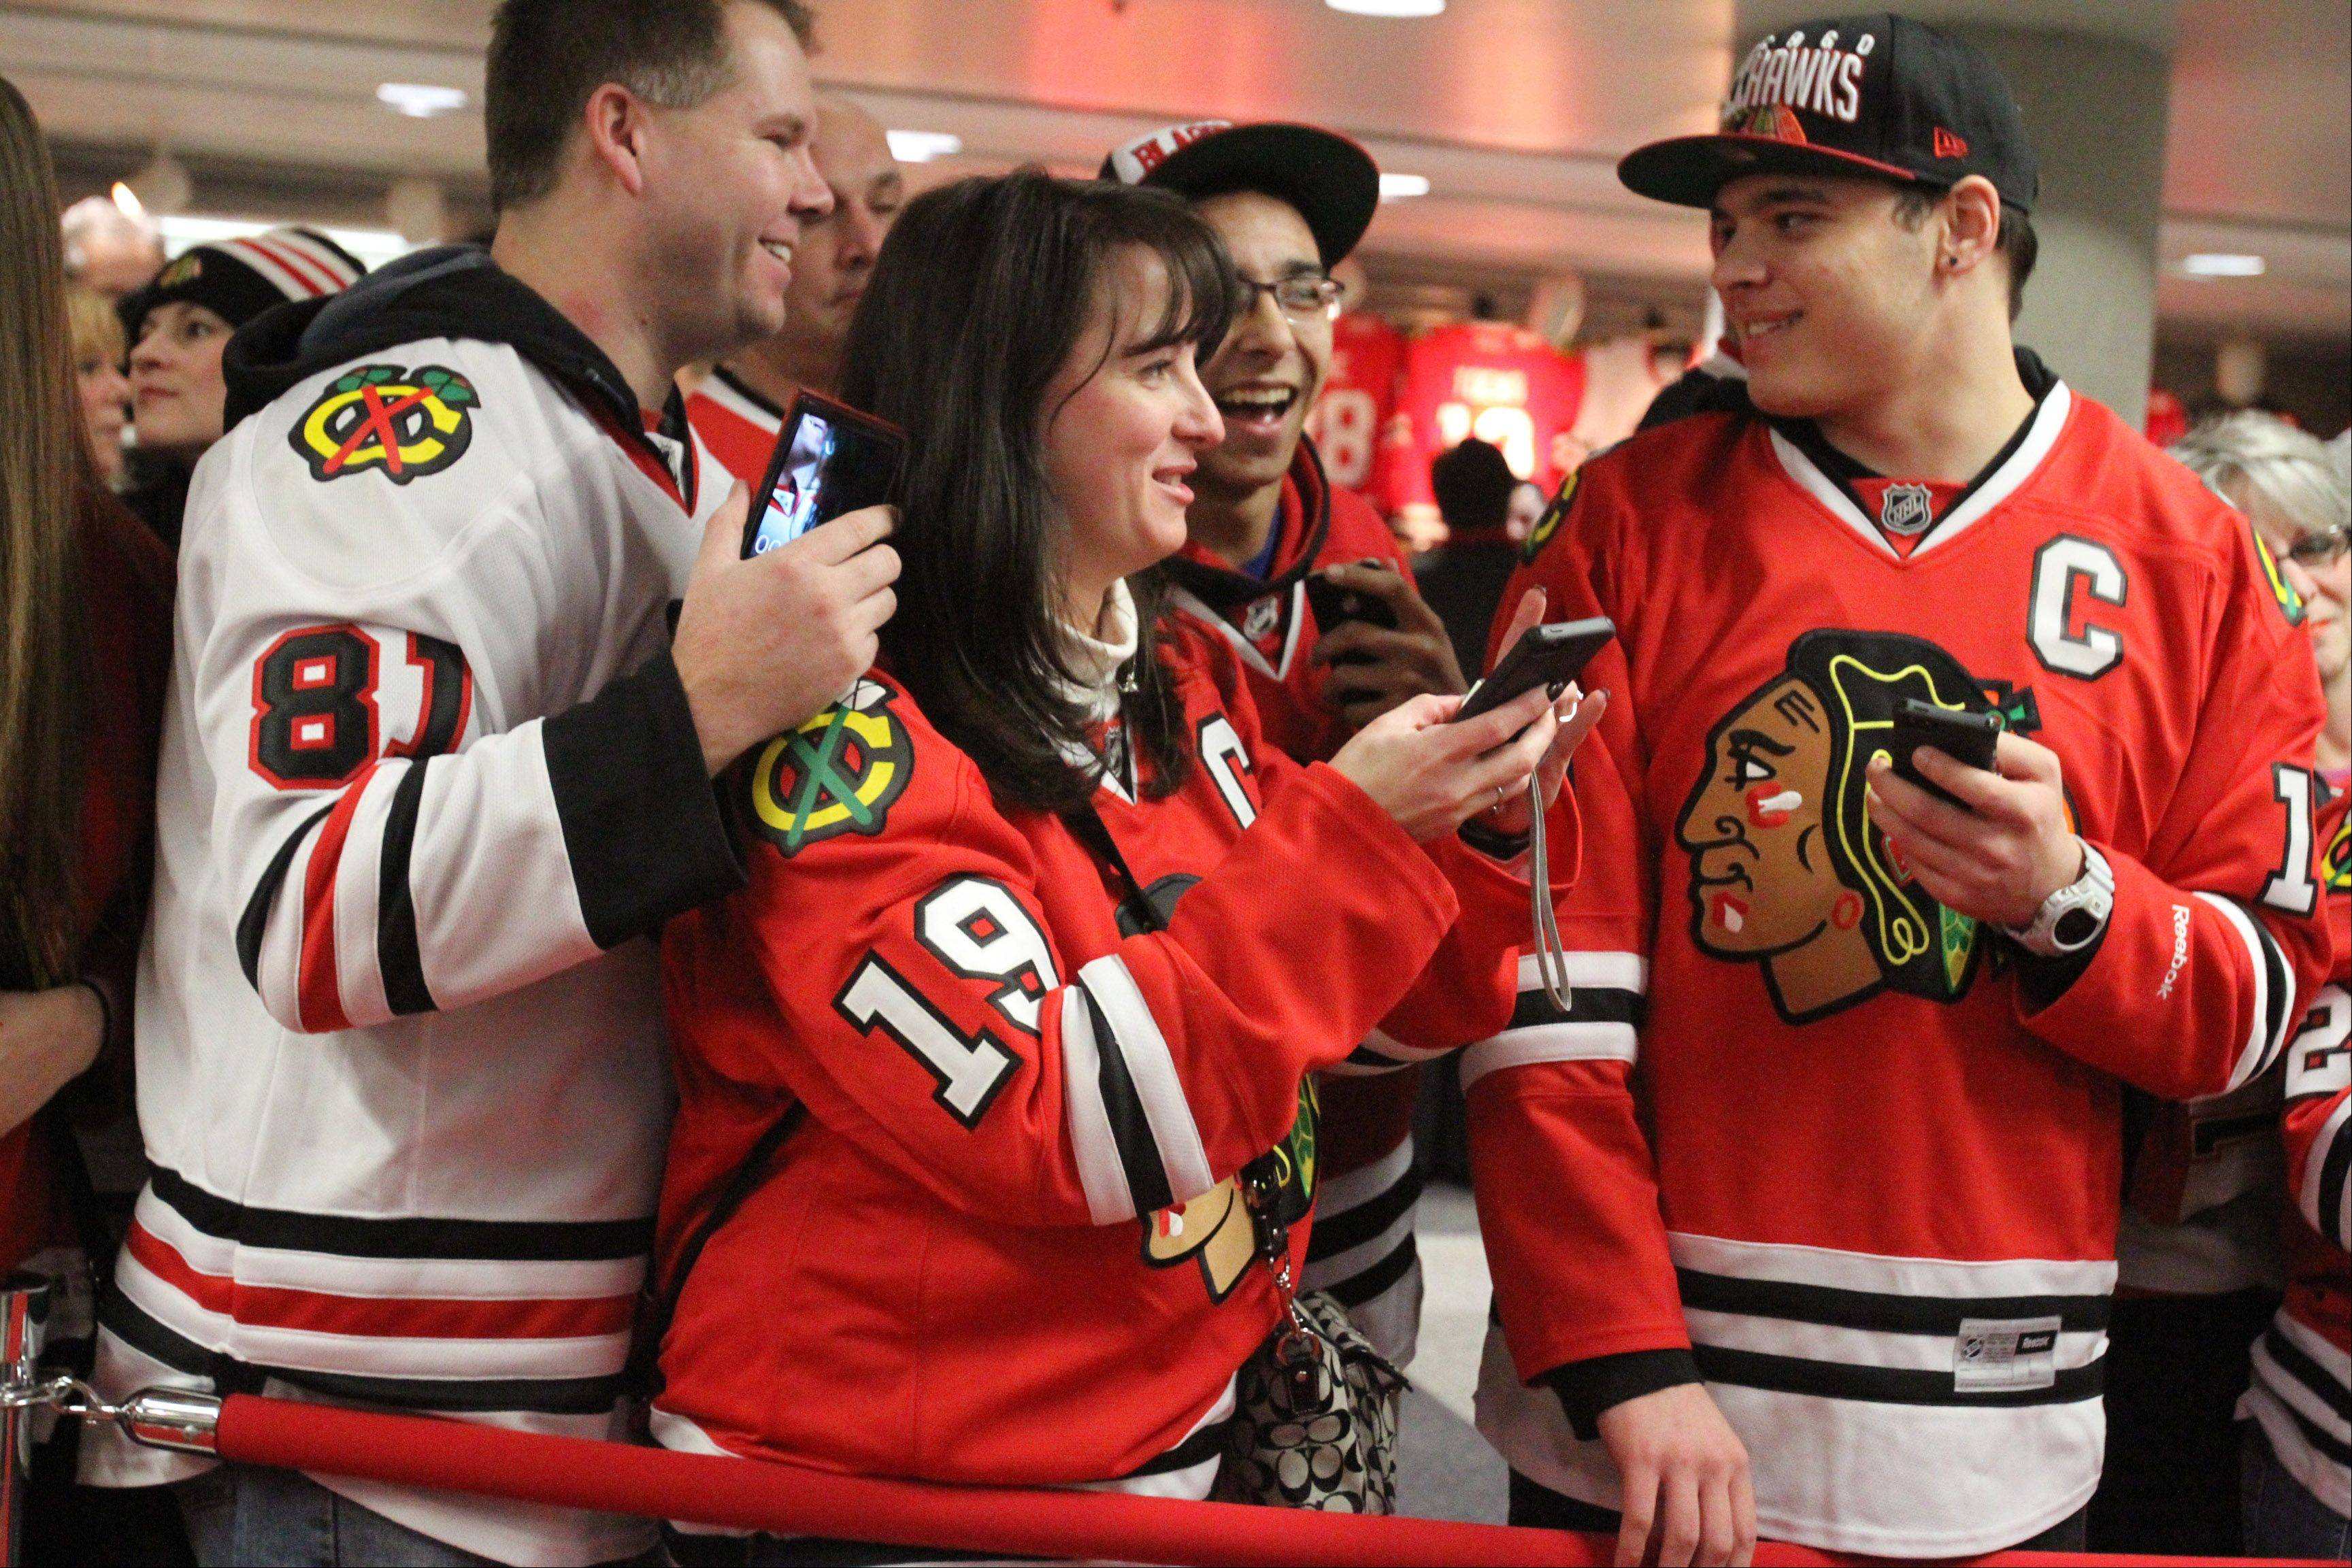 Chicago Blackhawks fans look at smartphone photograph during the red carpet event before the home opener.